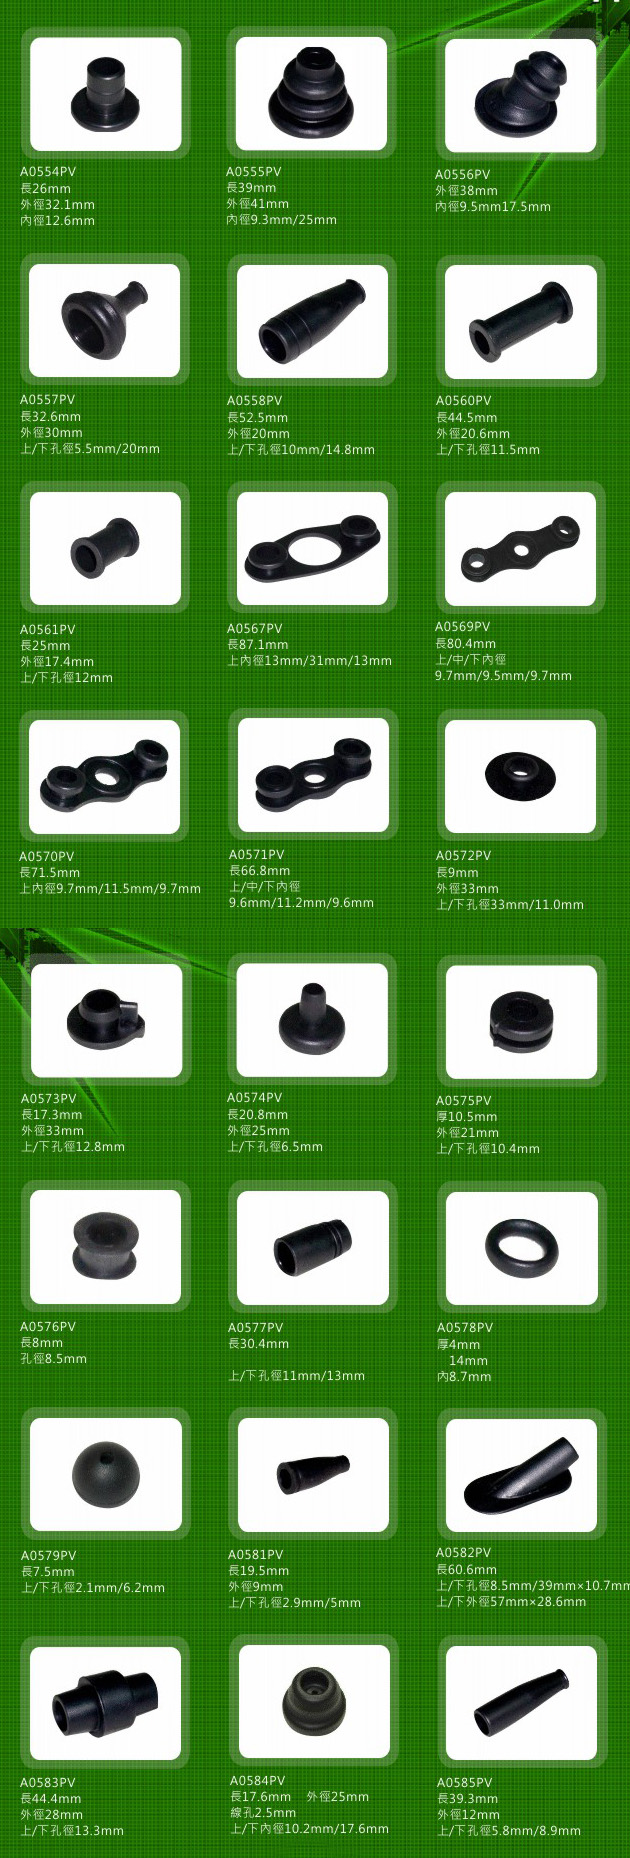 Control Cable Parts,Parking Brake Cables, Brake wire, Control Cable Parts, Brake wire plastic parts